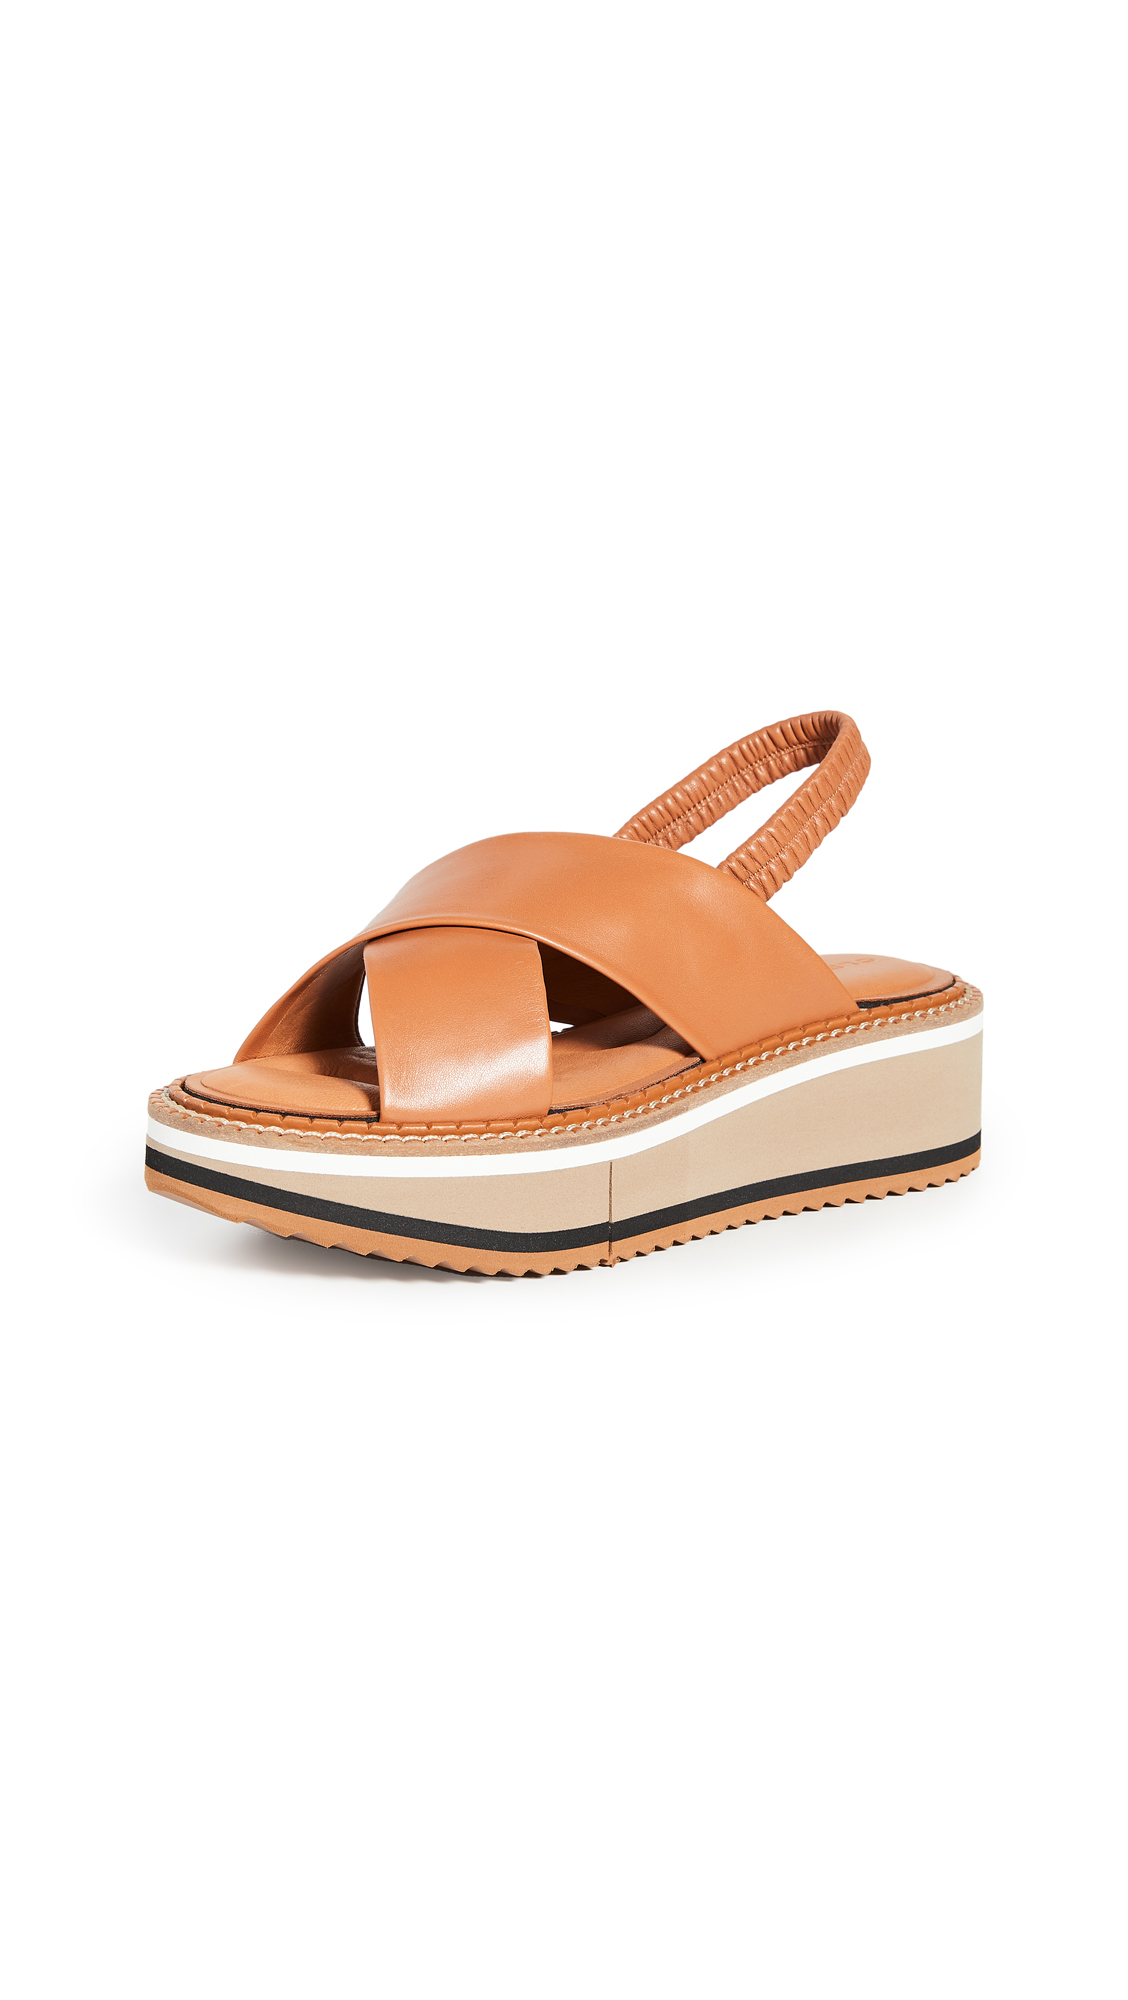 Buy Clergerie Freedom 3 Slingbacks online, shop Clergerie